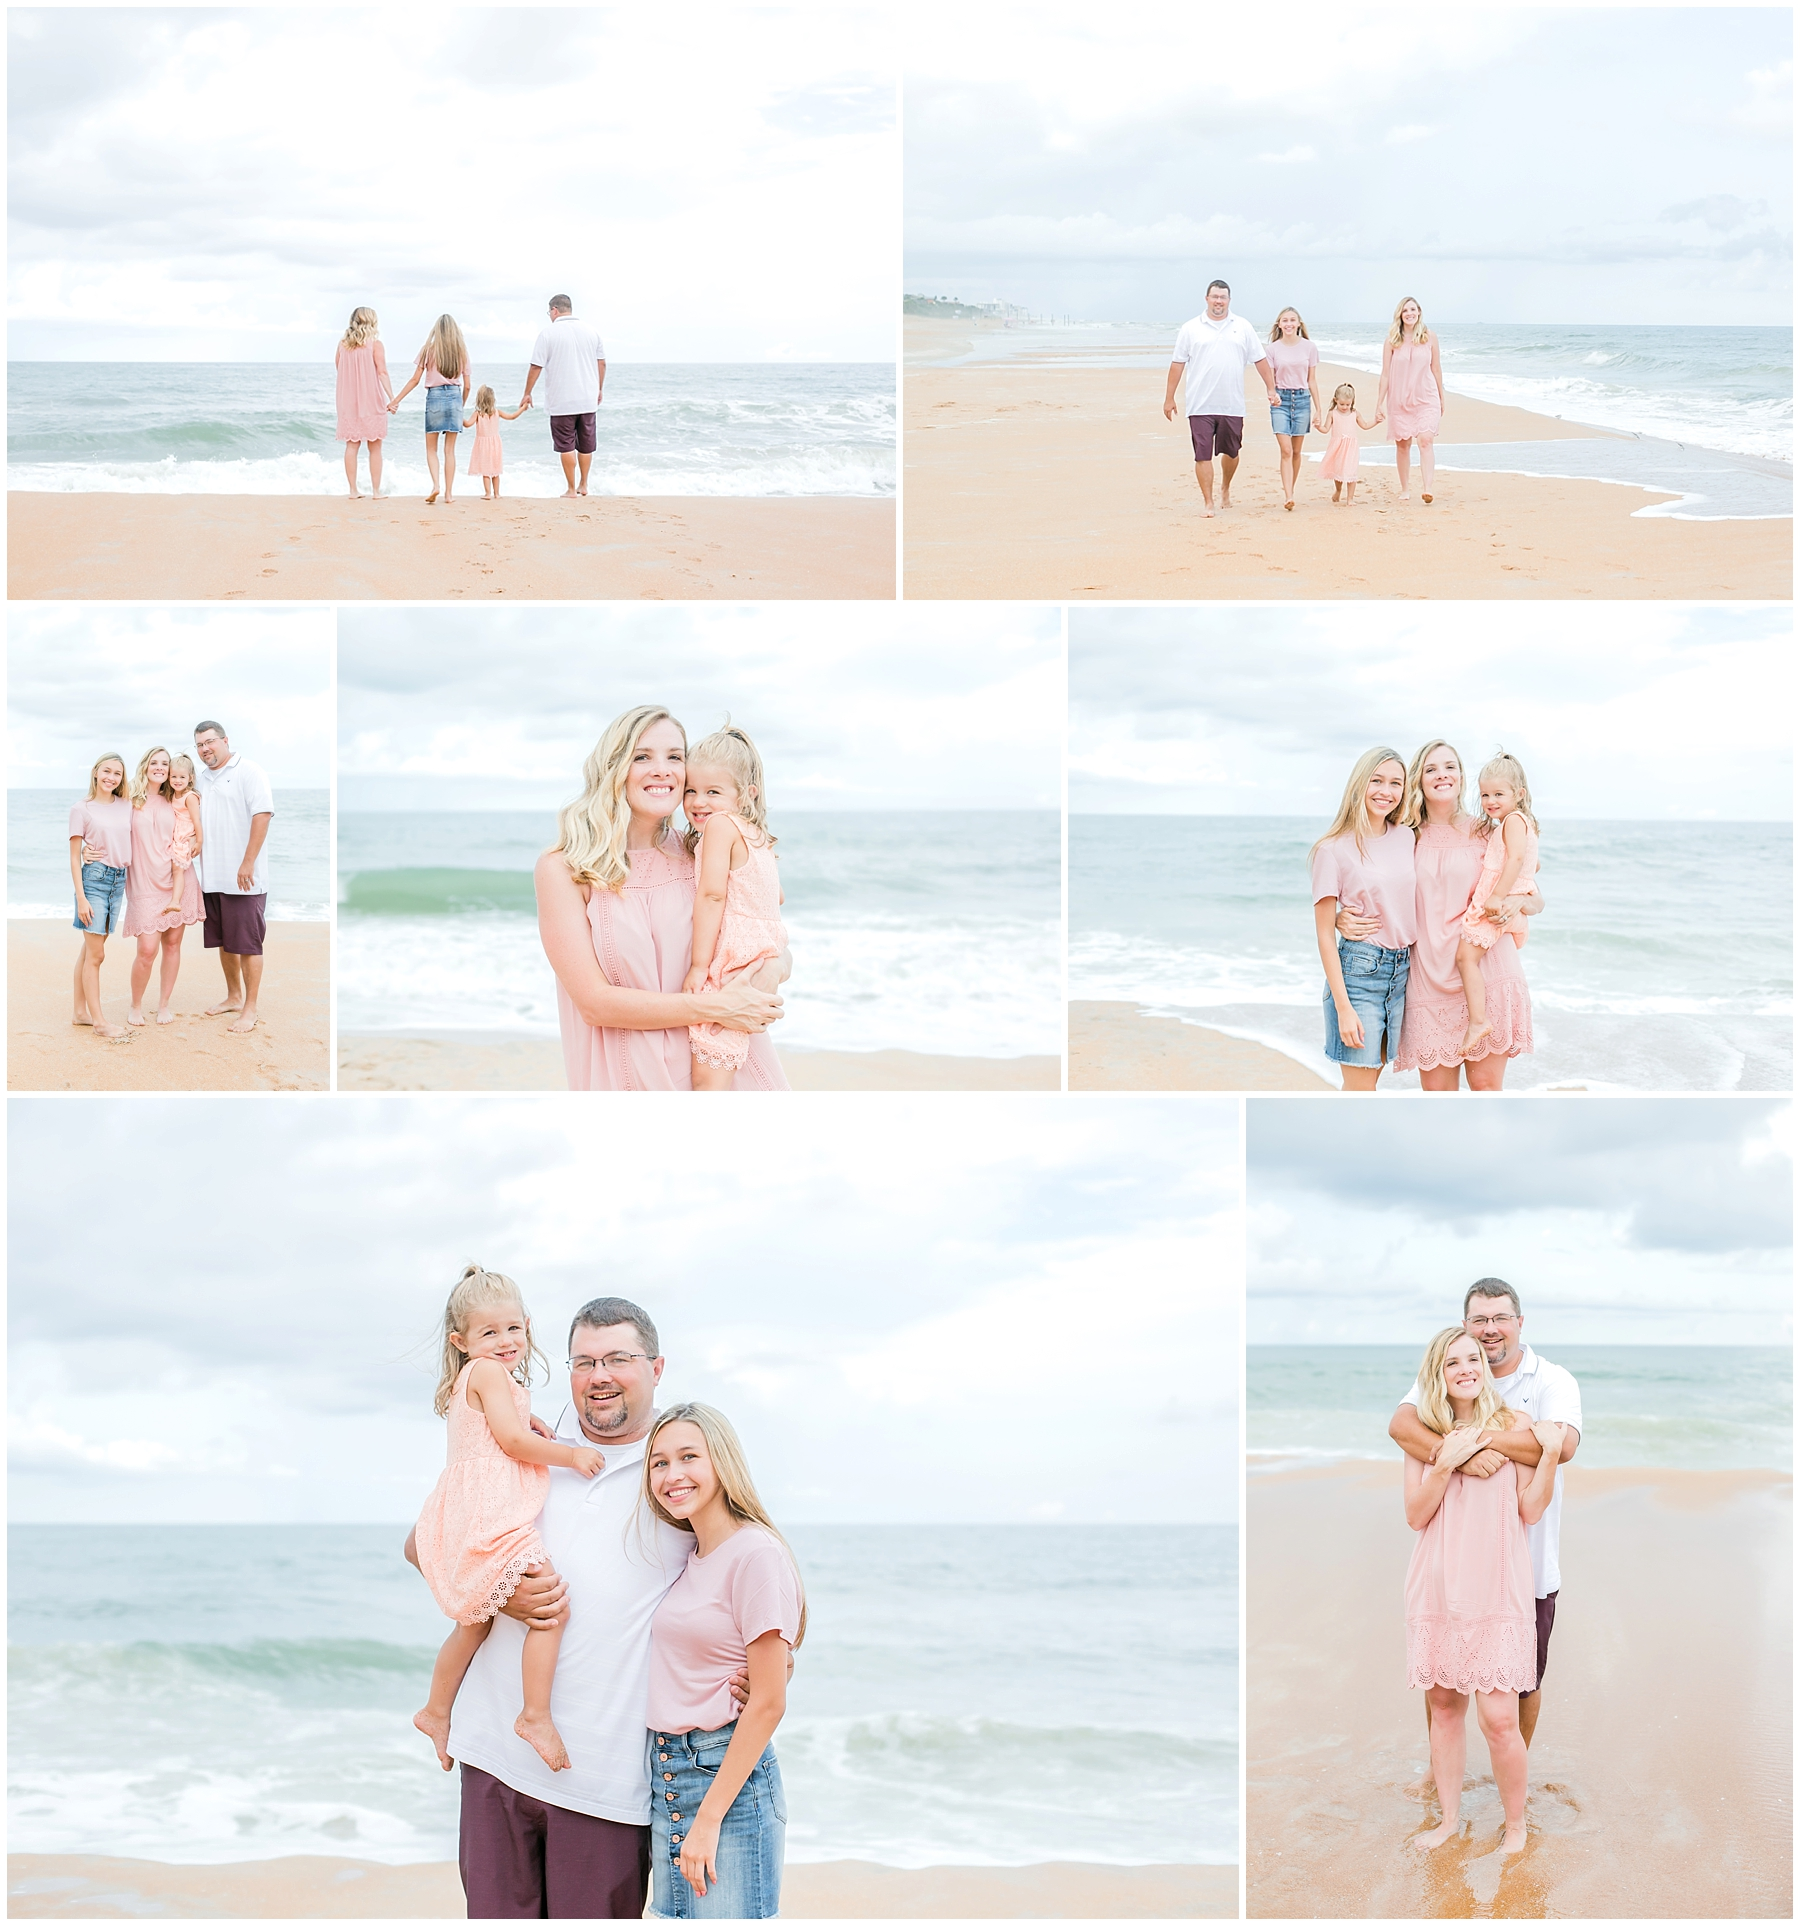 Such a fun family beach session at Ormand Beach! I had a great time getting to know this adorable family!